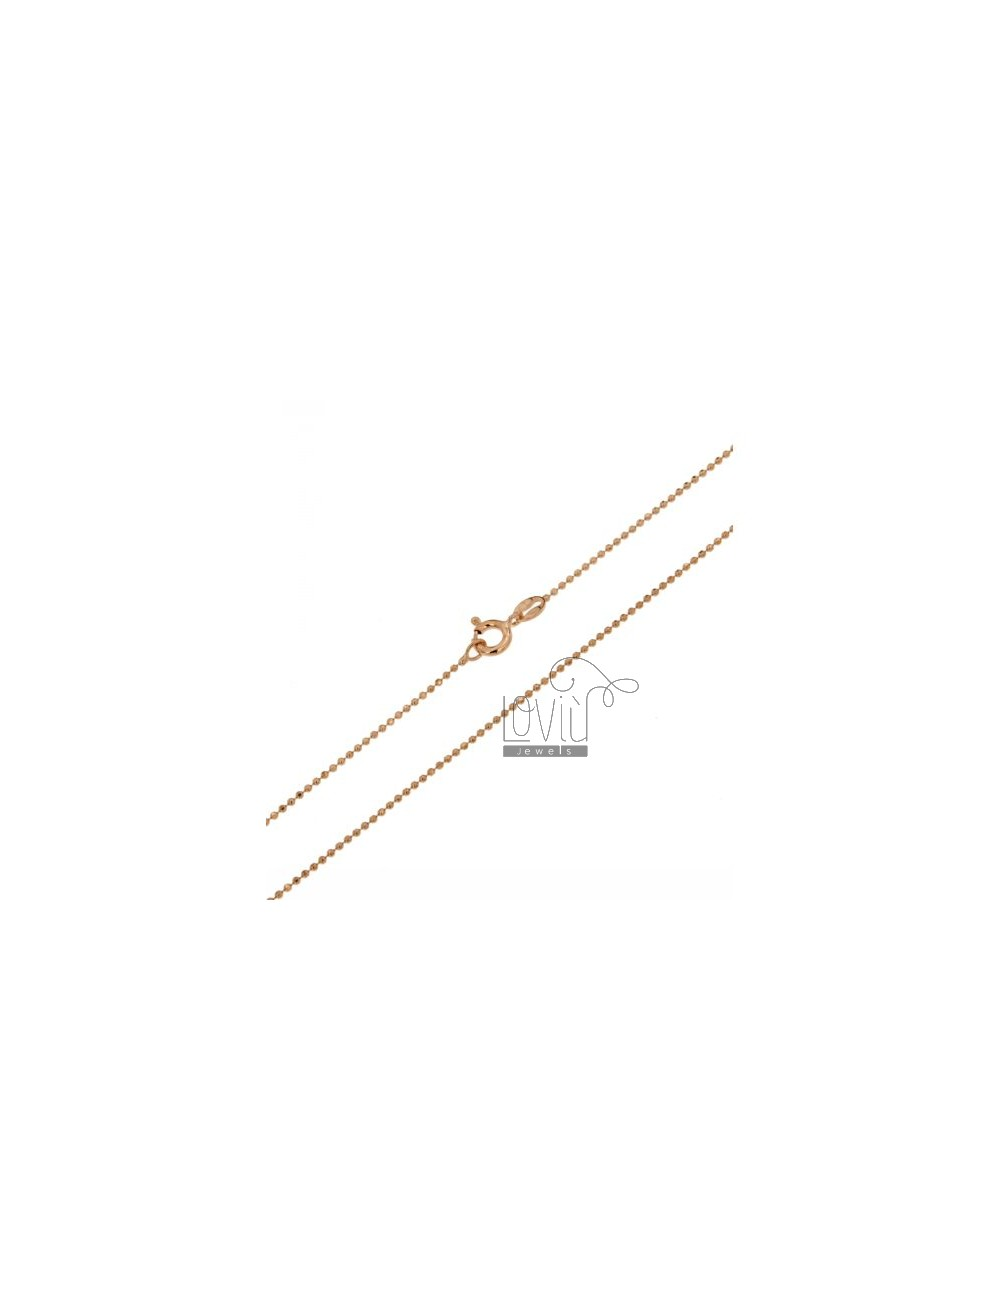 ROSE GOLD PLATED BALL CHAIN &8203&8203faceted 1.2 MM 60 CM IN TIT AG 925